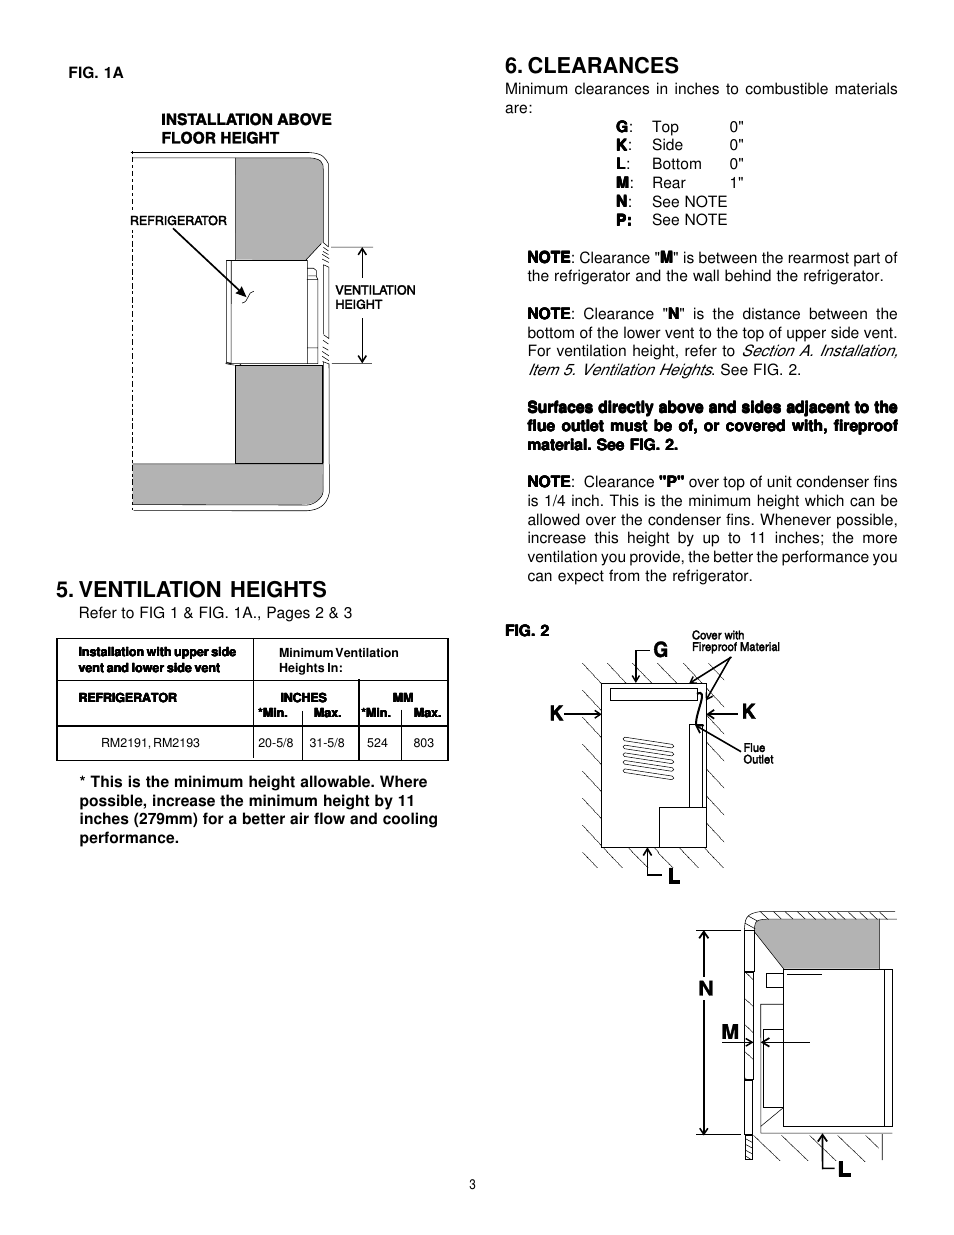 Dometic Rm2193 Wiring Diagram 1998 Diagrams Rm2652 Schematic Rm2191 Refrigerator Amana